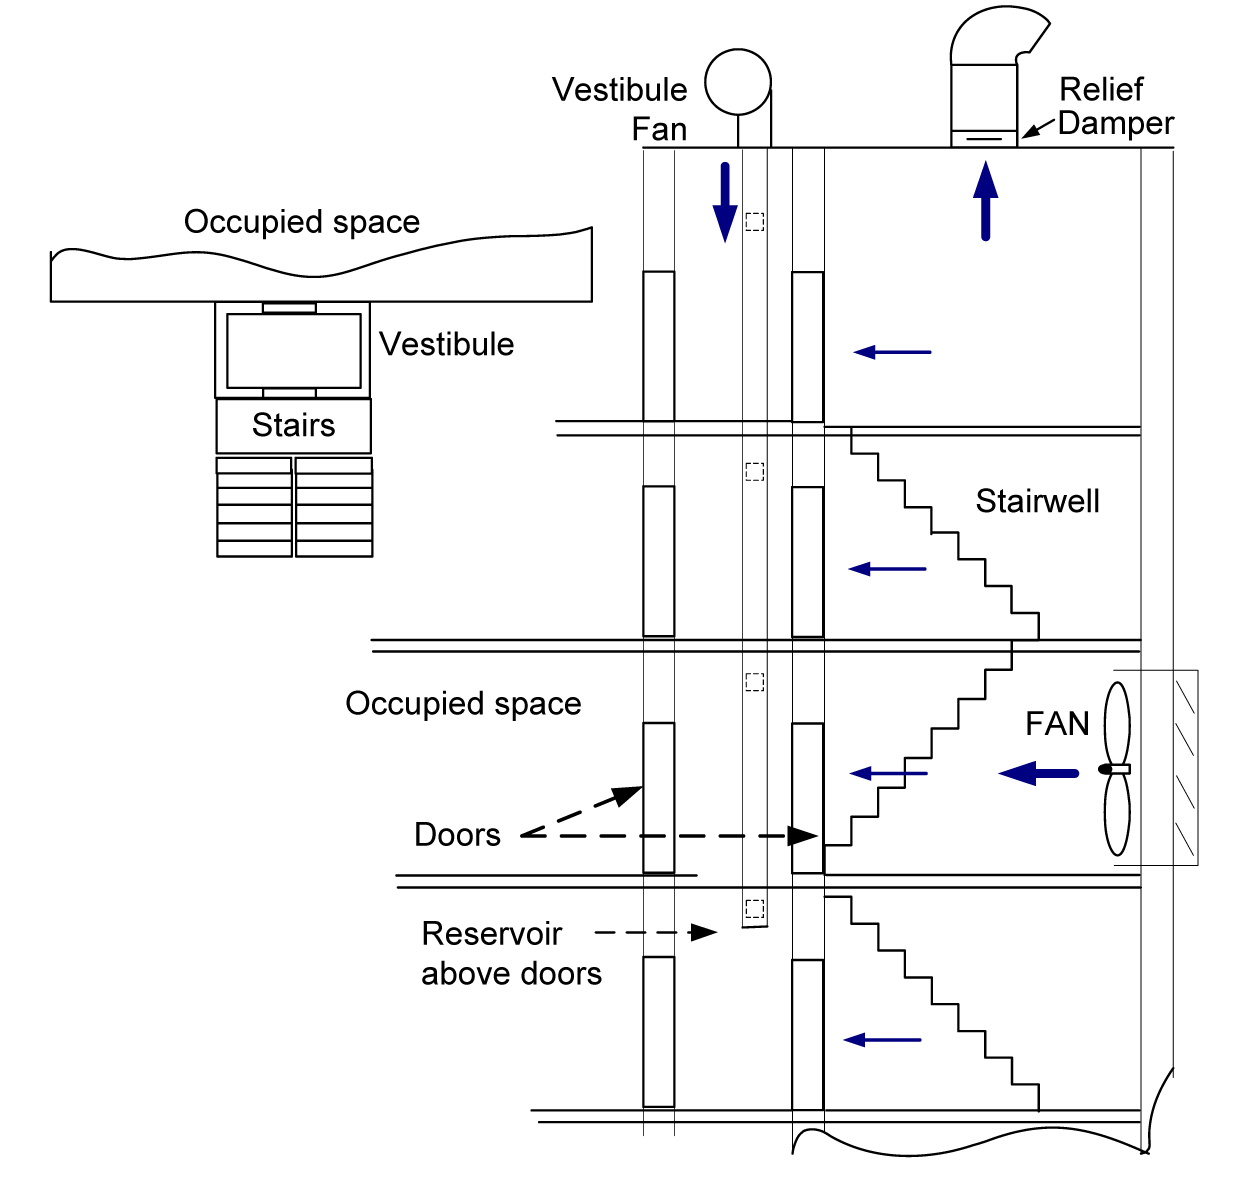 A Comprehensive Look At Engineered Smoke Control Systems Stairs Design Exhaust Fan Control System